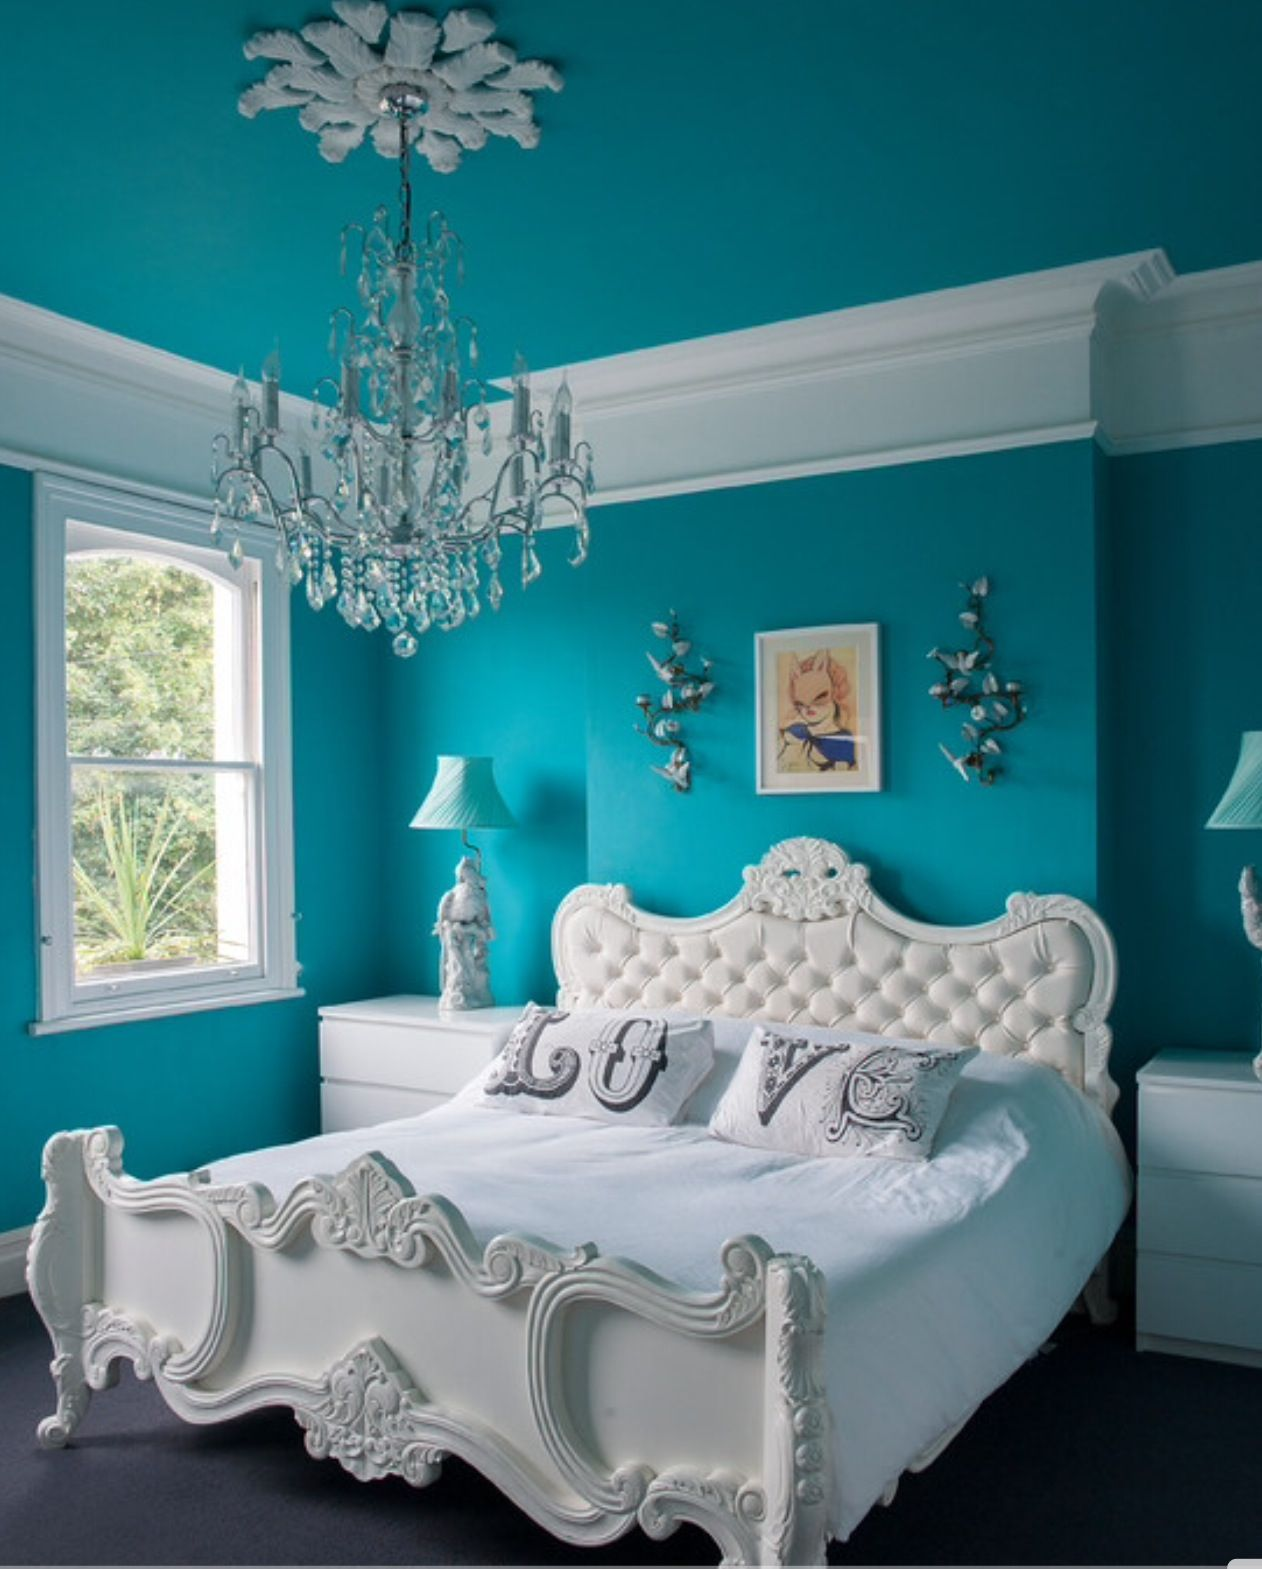 Teal Walls White Rocco Bed Crystal Chandelier Bedroom